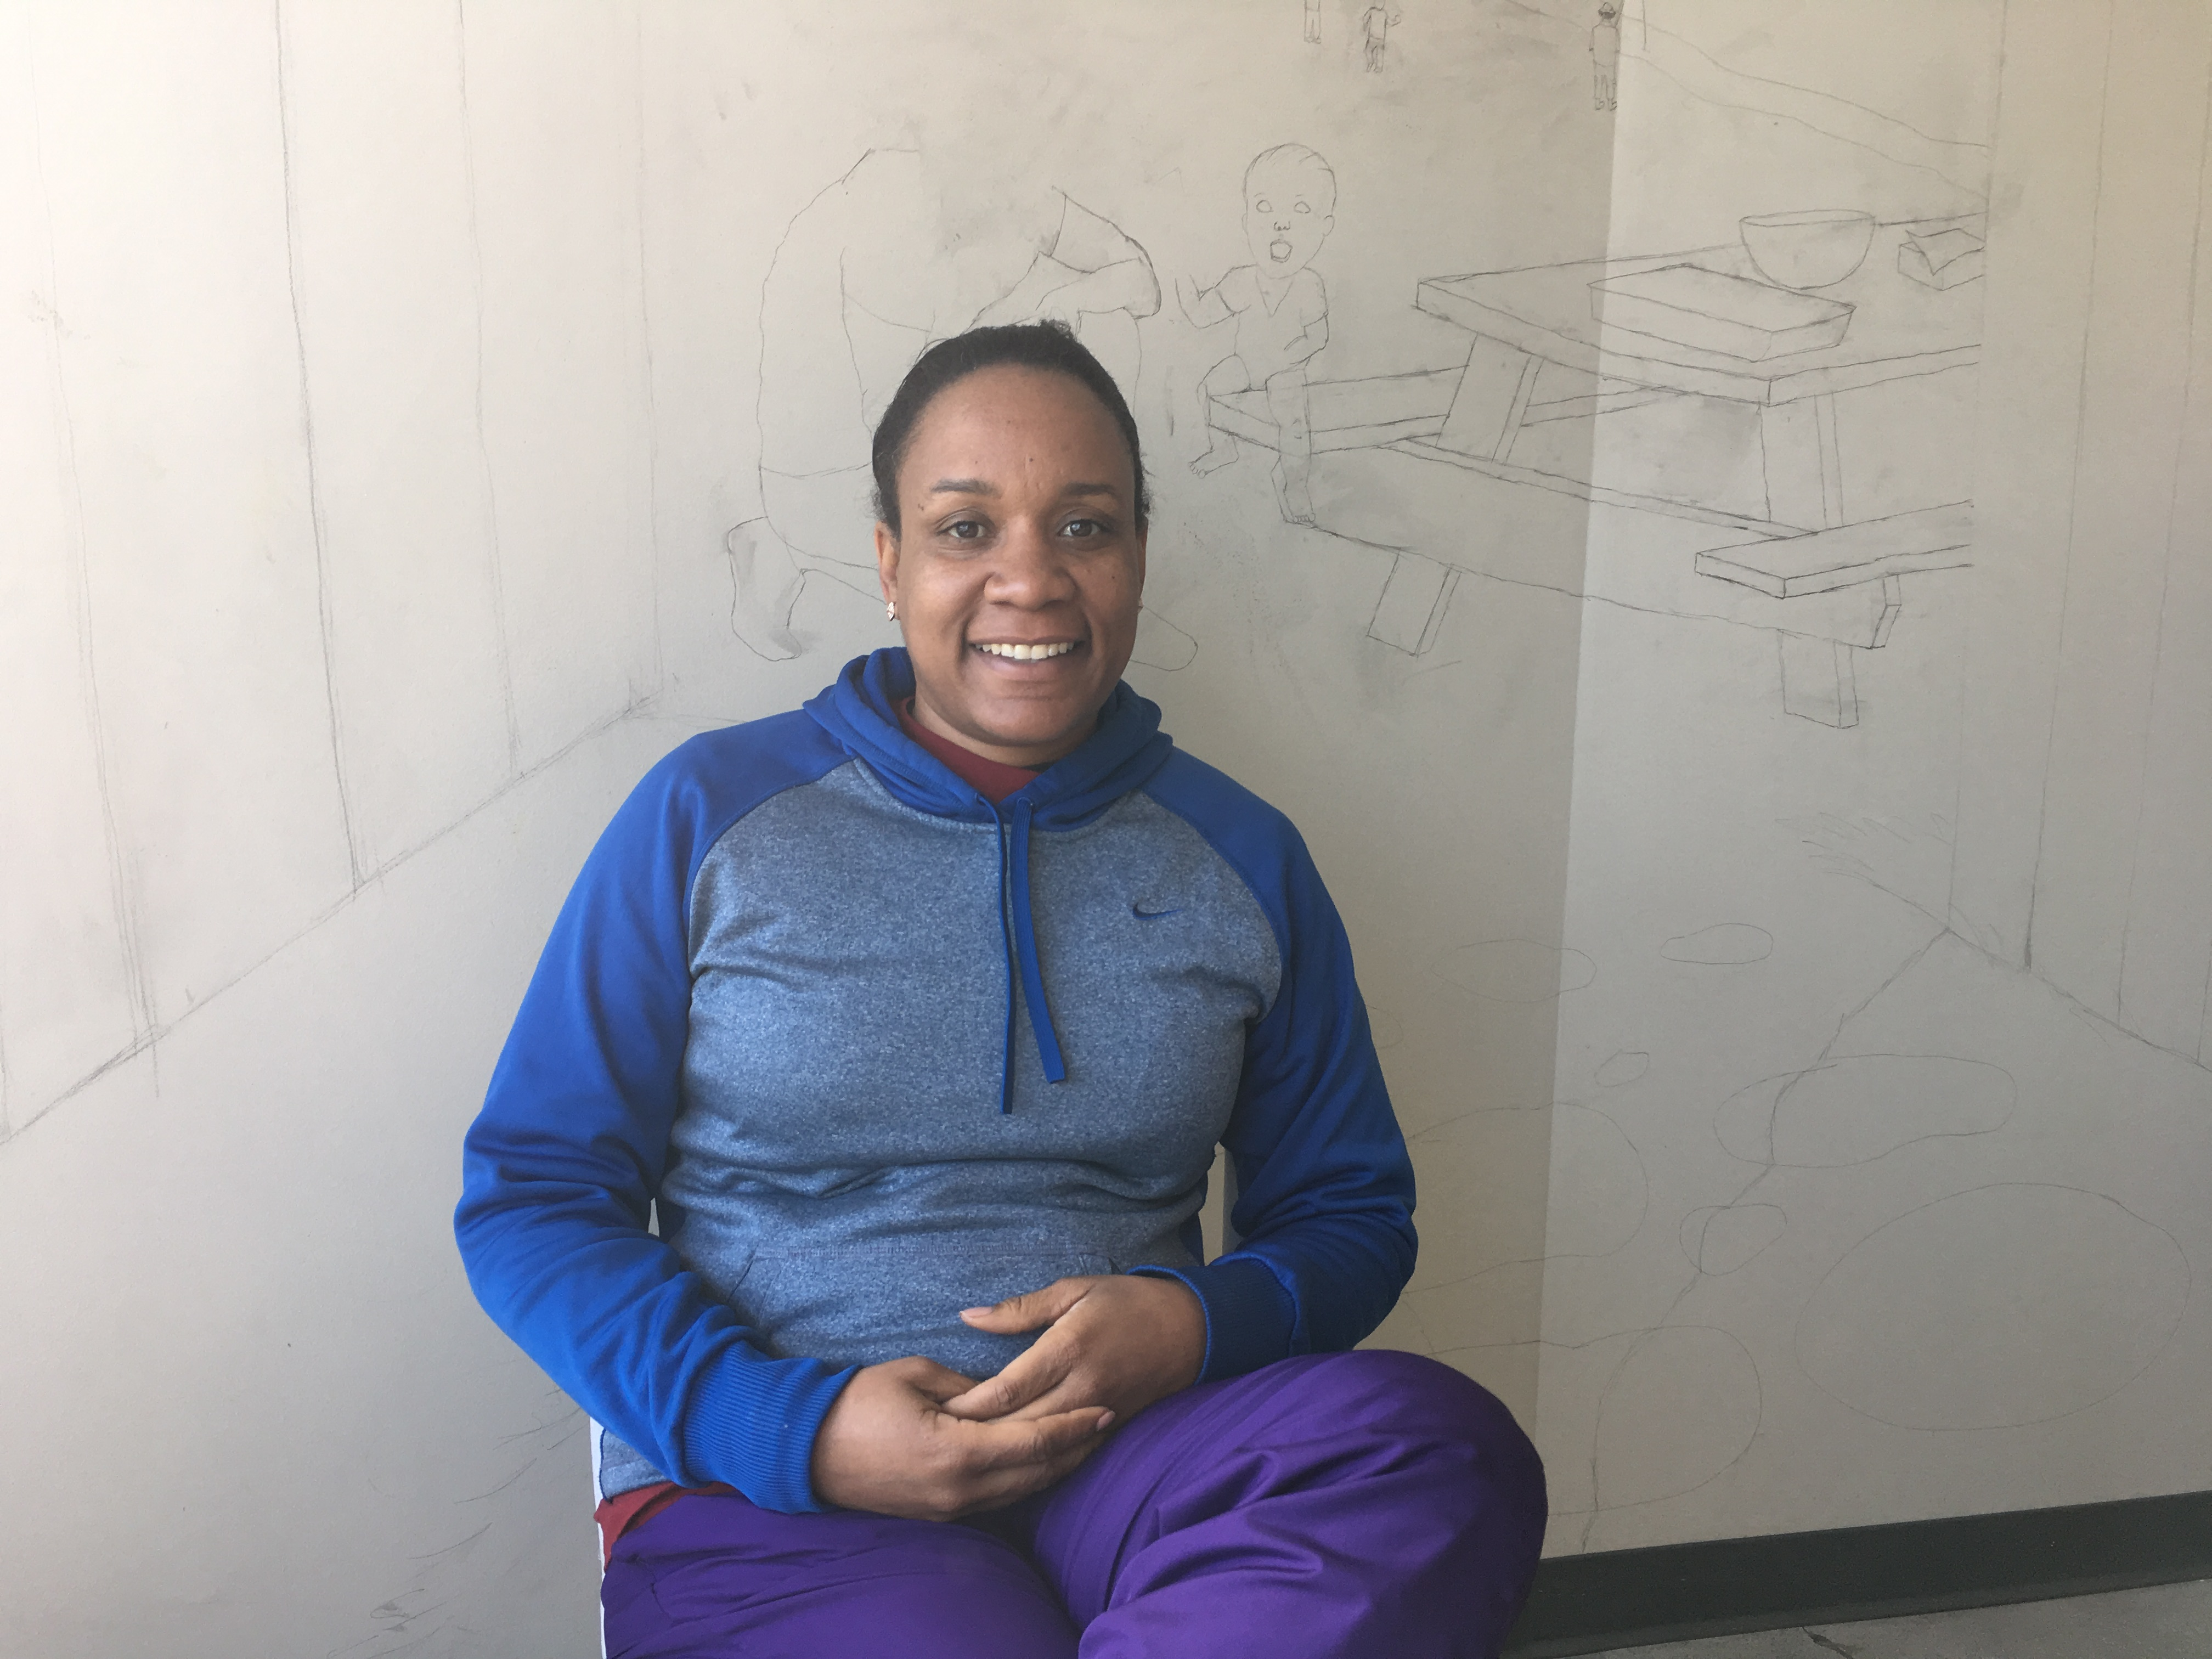 General Manager Janiqua Jackson sits in front of a mural in progress inside the community room at Urban Greens.